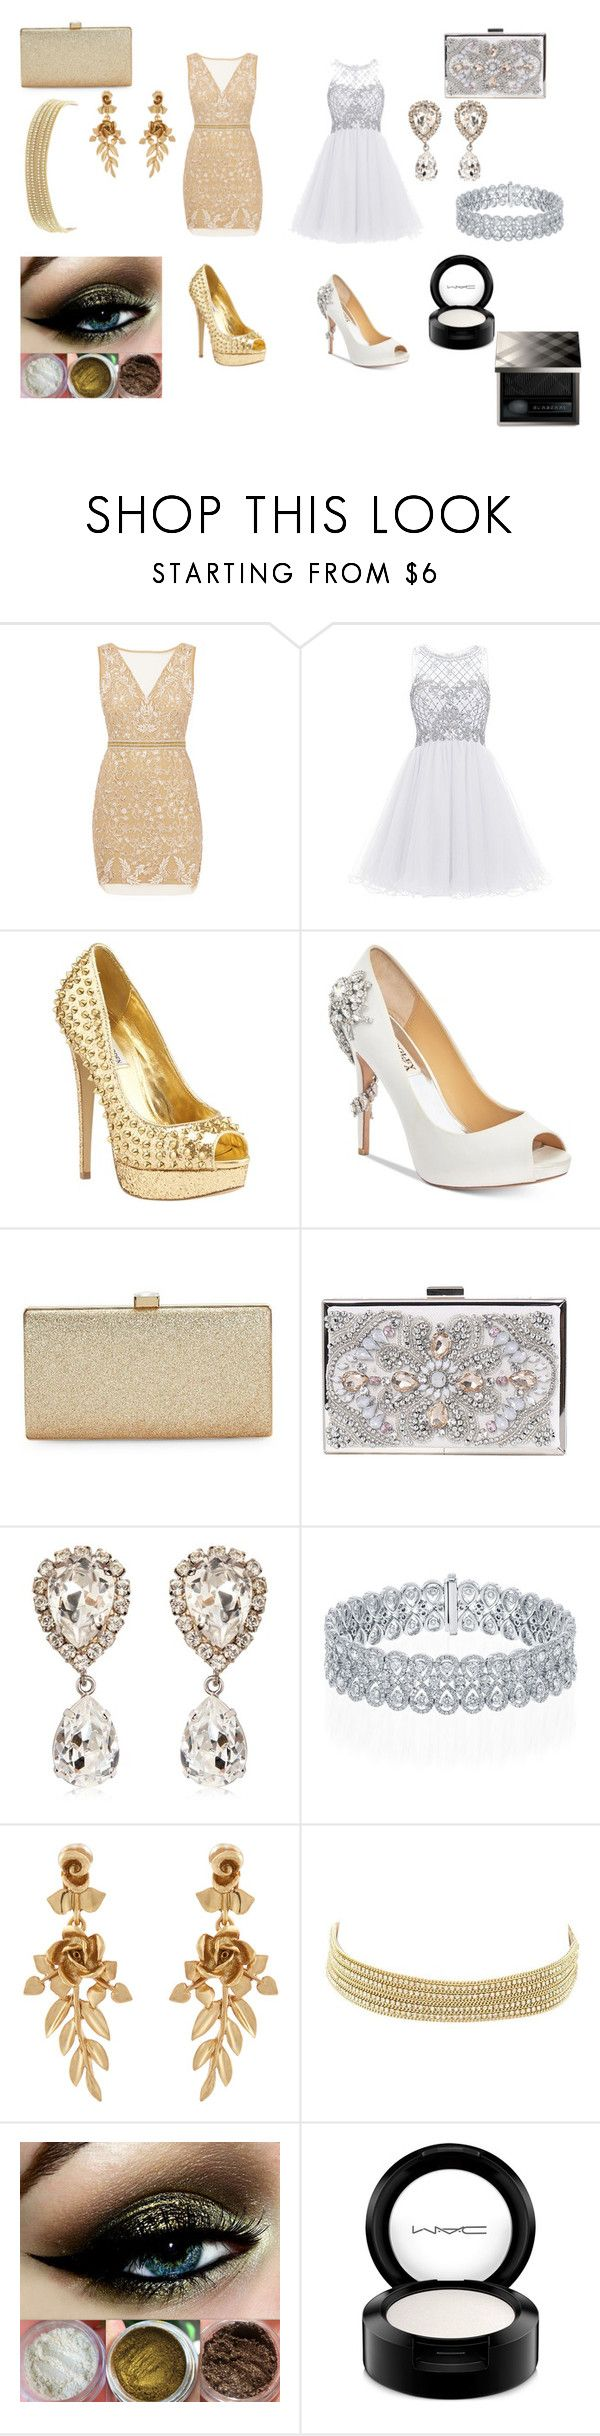 """New Years Eve party"" by miastammer ❤ liked on Polyvore featuring Nicole Miller, Steve Madden, Badgley Mischka, La Regale, Dolce&Gabbana, Oscar de la Renta, Charlotte Russe, MAC Cosmetics and Burberry"